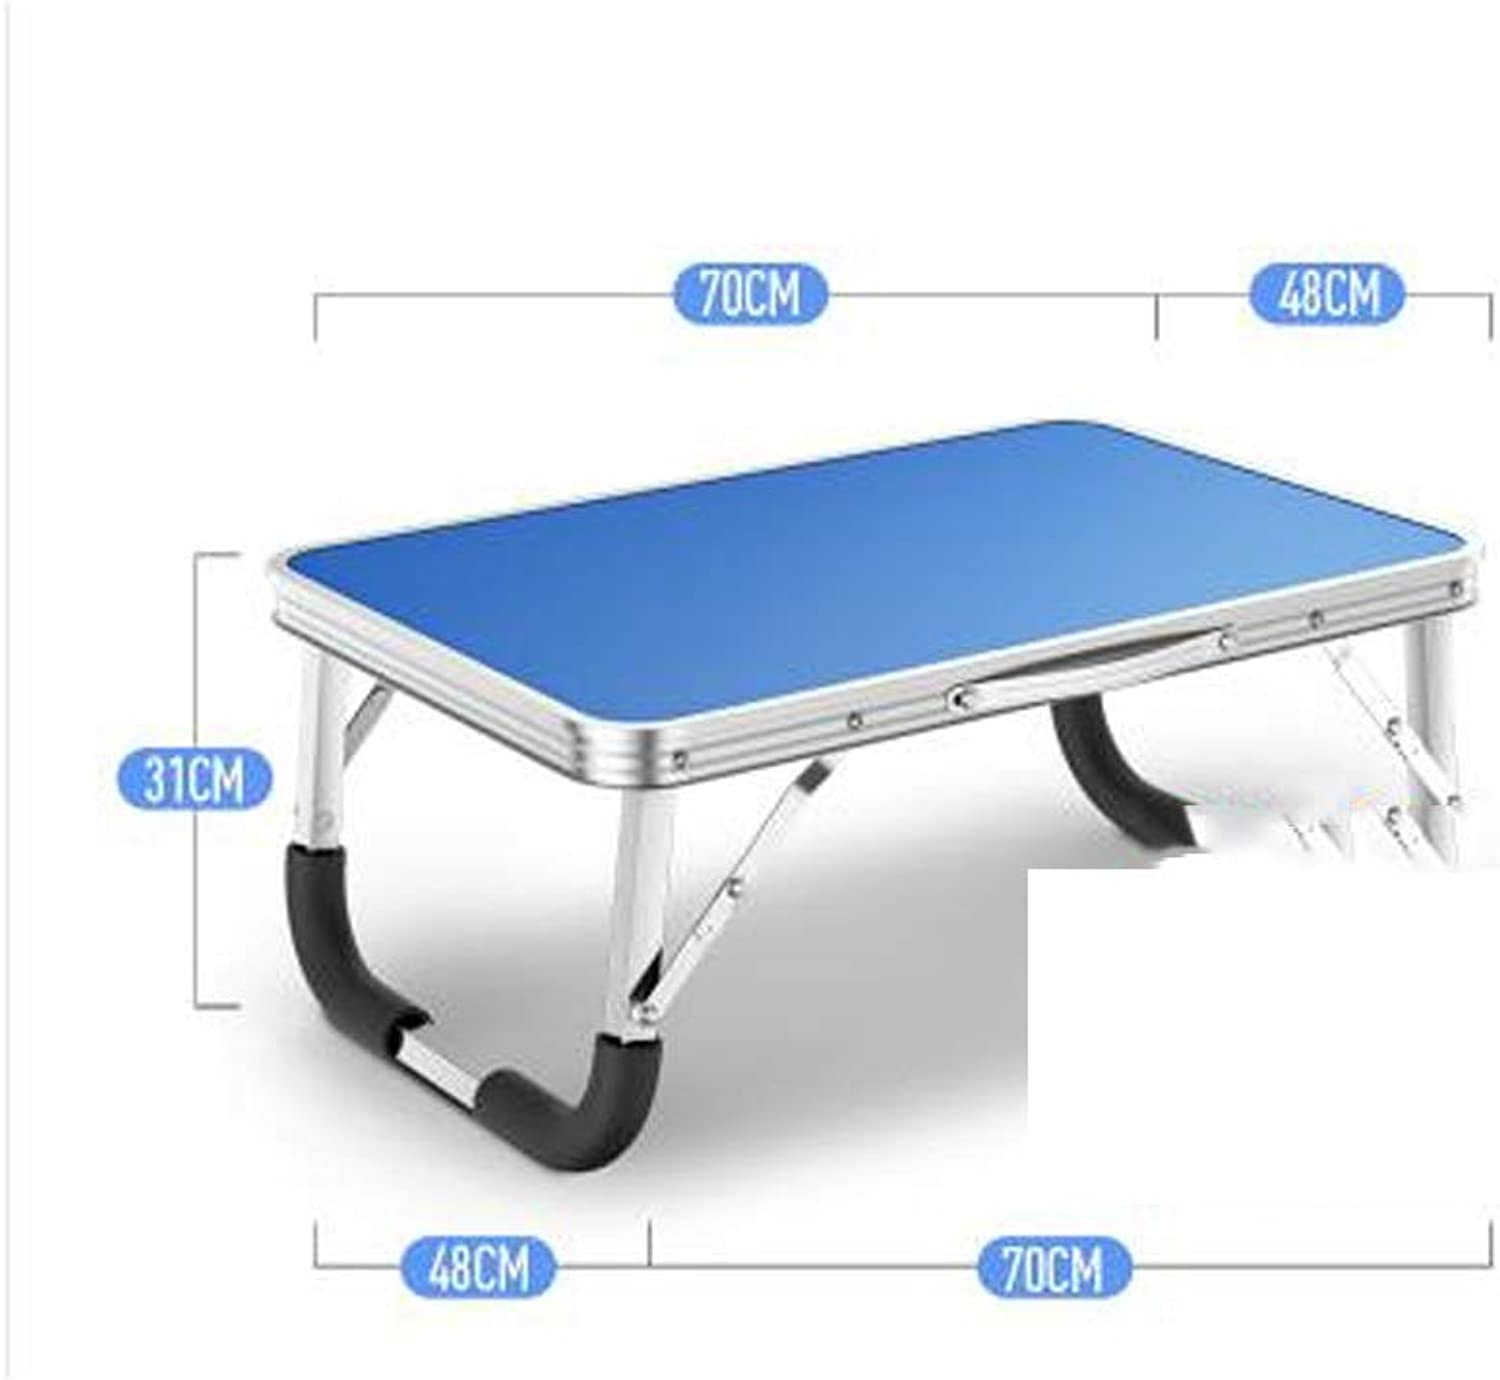 LPKH Folding Table Bed Laptop Table College Student Dining Table Dormitory Desk Bedroom Learning Small Table (color   bluee)